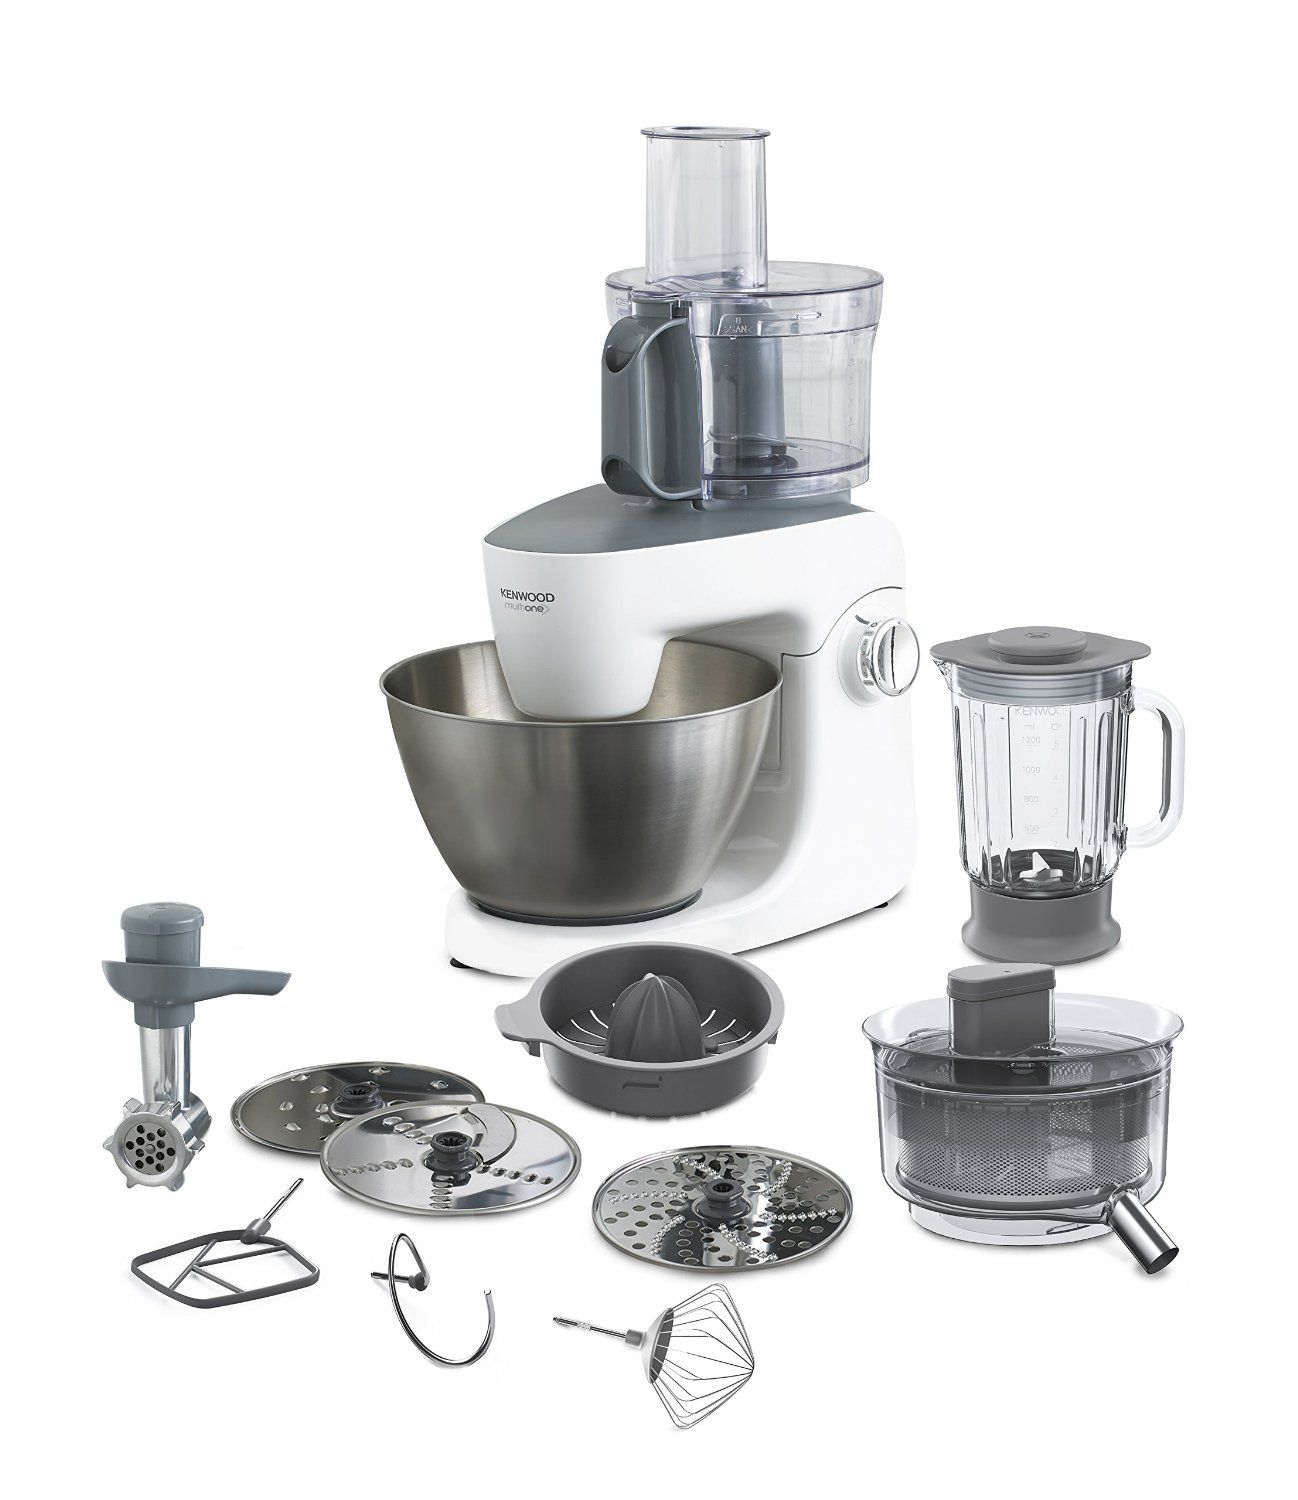 kenwood kit accessori robot da cucina km260 at264. kenwood kah647pl ...